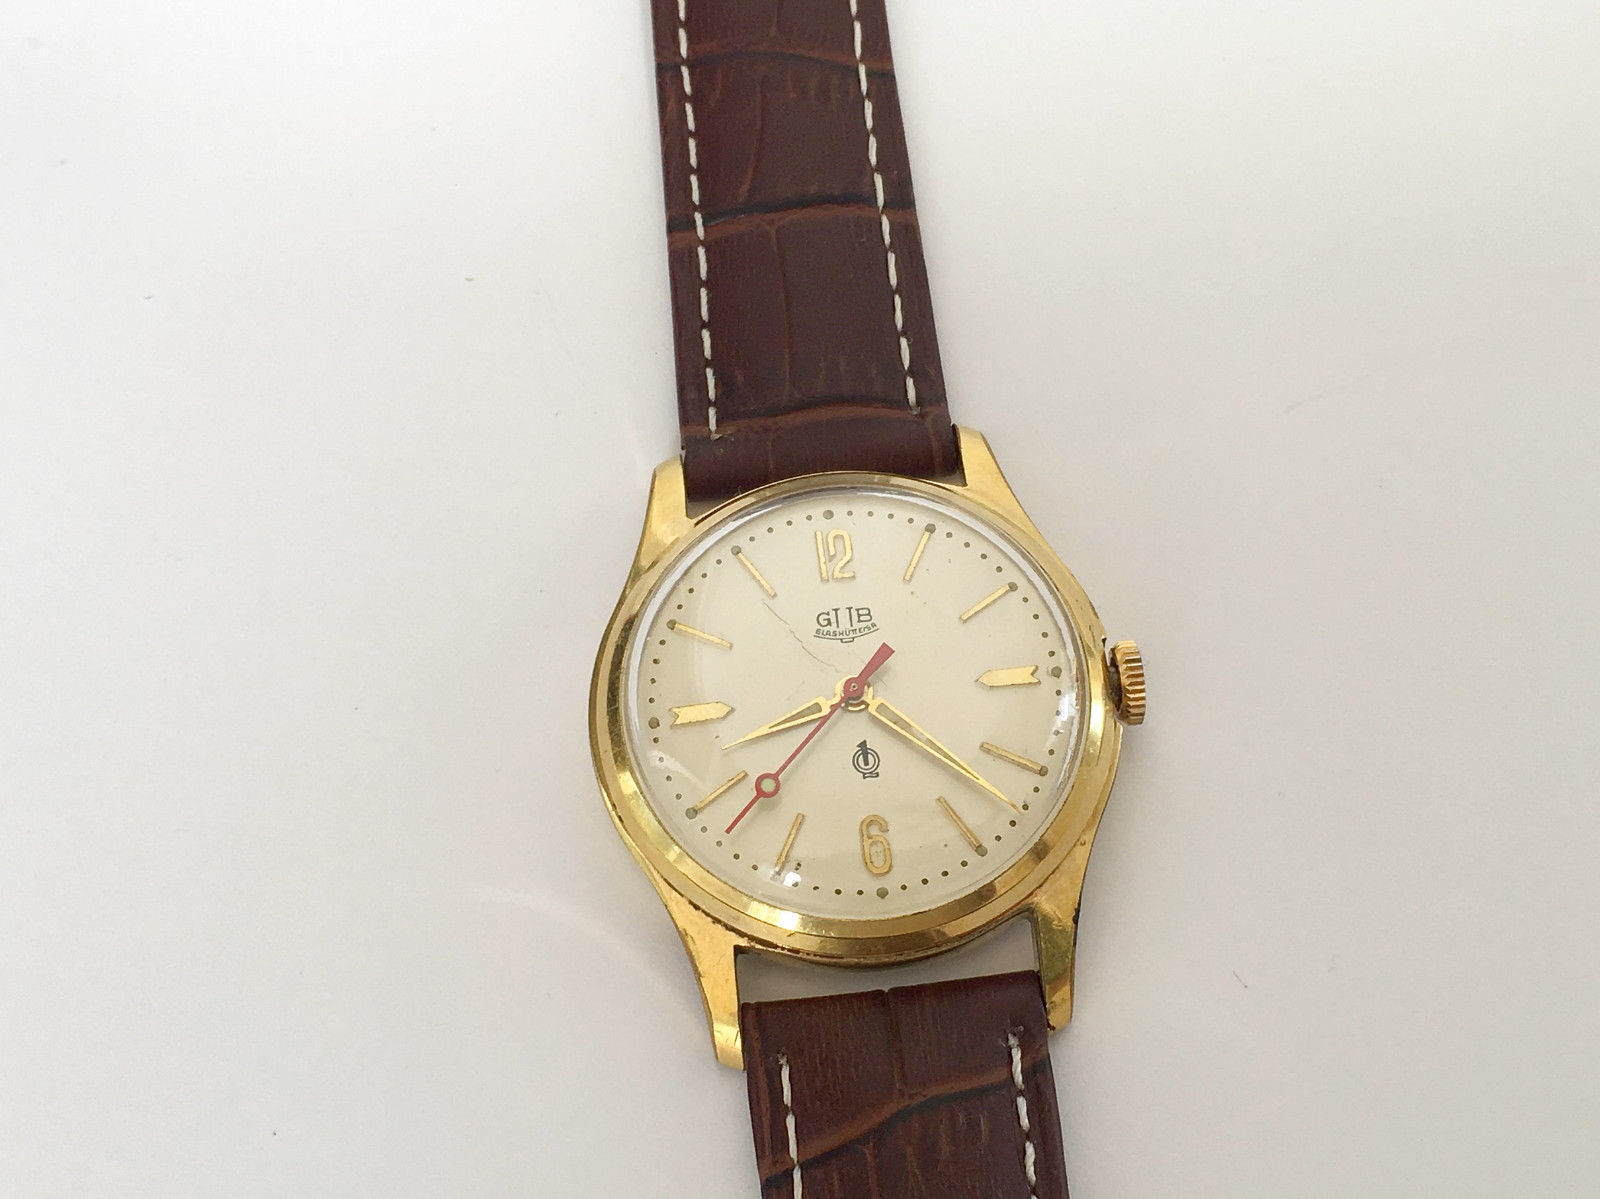 Vintage Rare GLASHUTTE GUB Q1 Chronometre cal. 60.3 Mechanical Germany Watch image 4